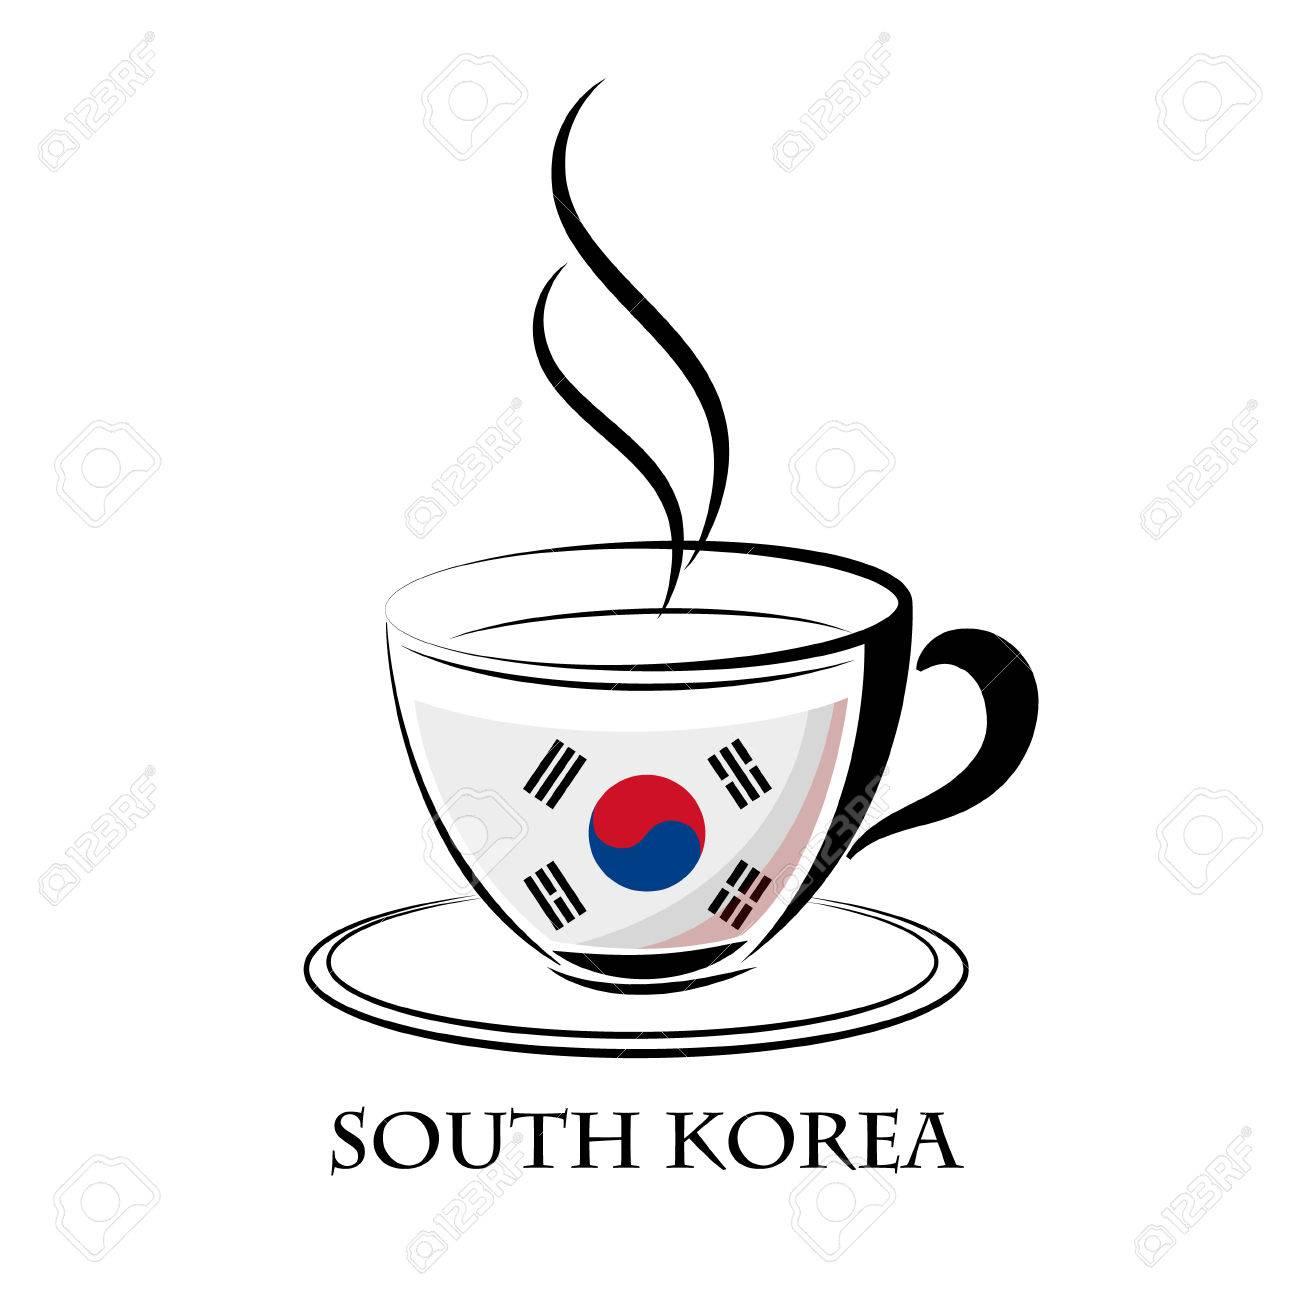 Coffee Logo Made From The Flag Of South Korea Royalty Free Cliparts Vectors And Stock Illustration Image 68806583